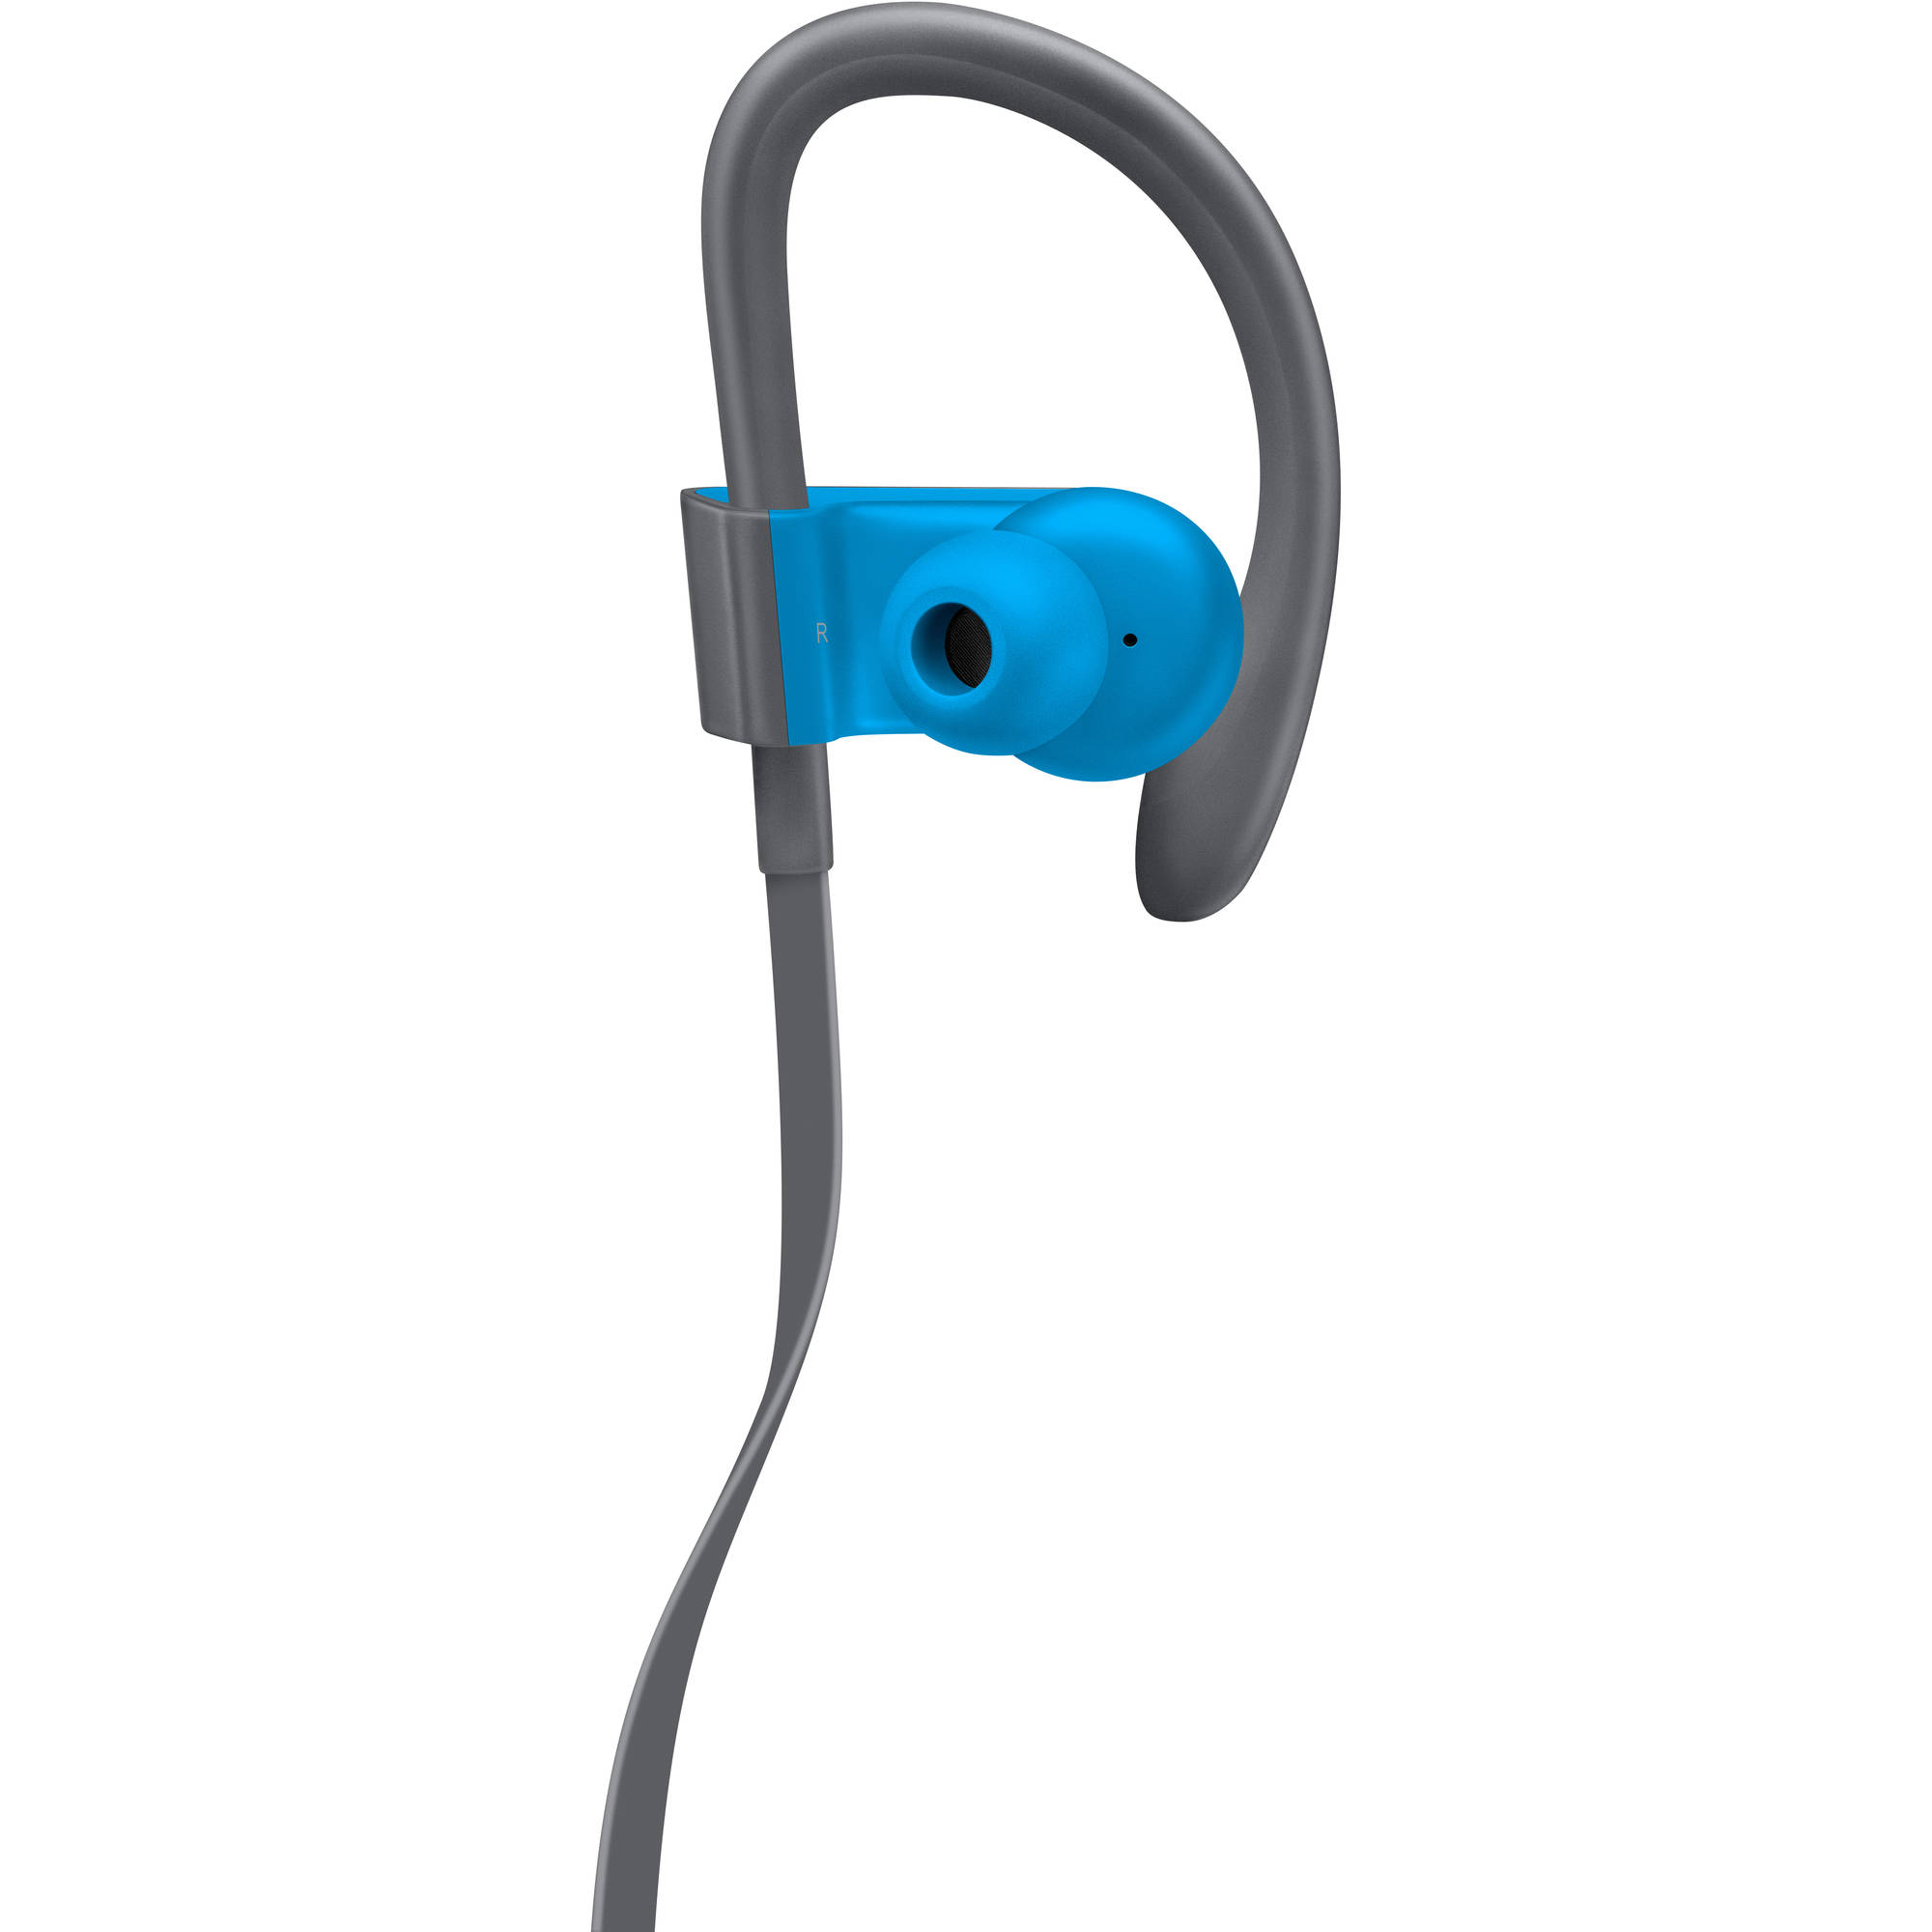 f01dfdb21a7 Refurbished Powerbeats3 Wireless Earphones - Walmart.com